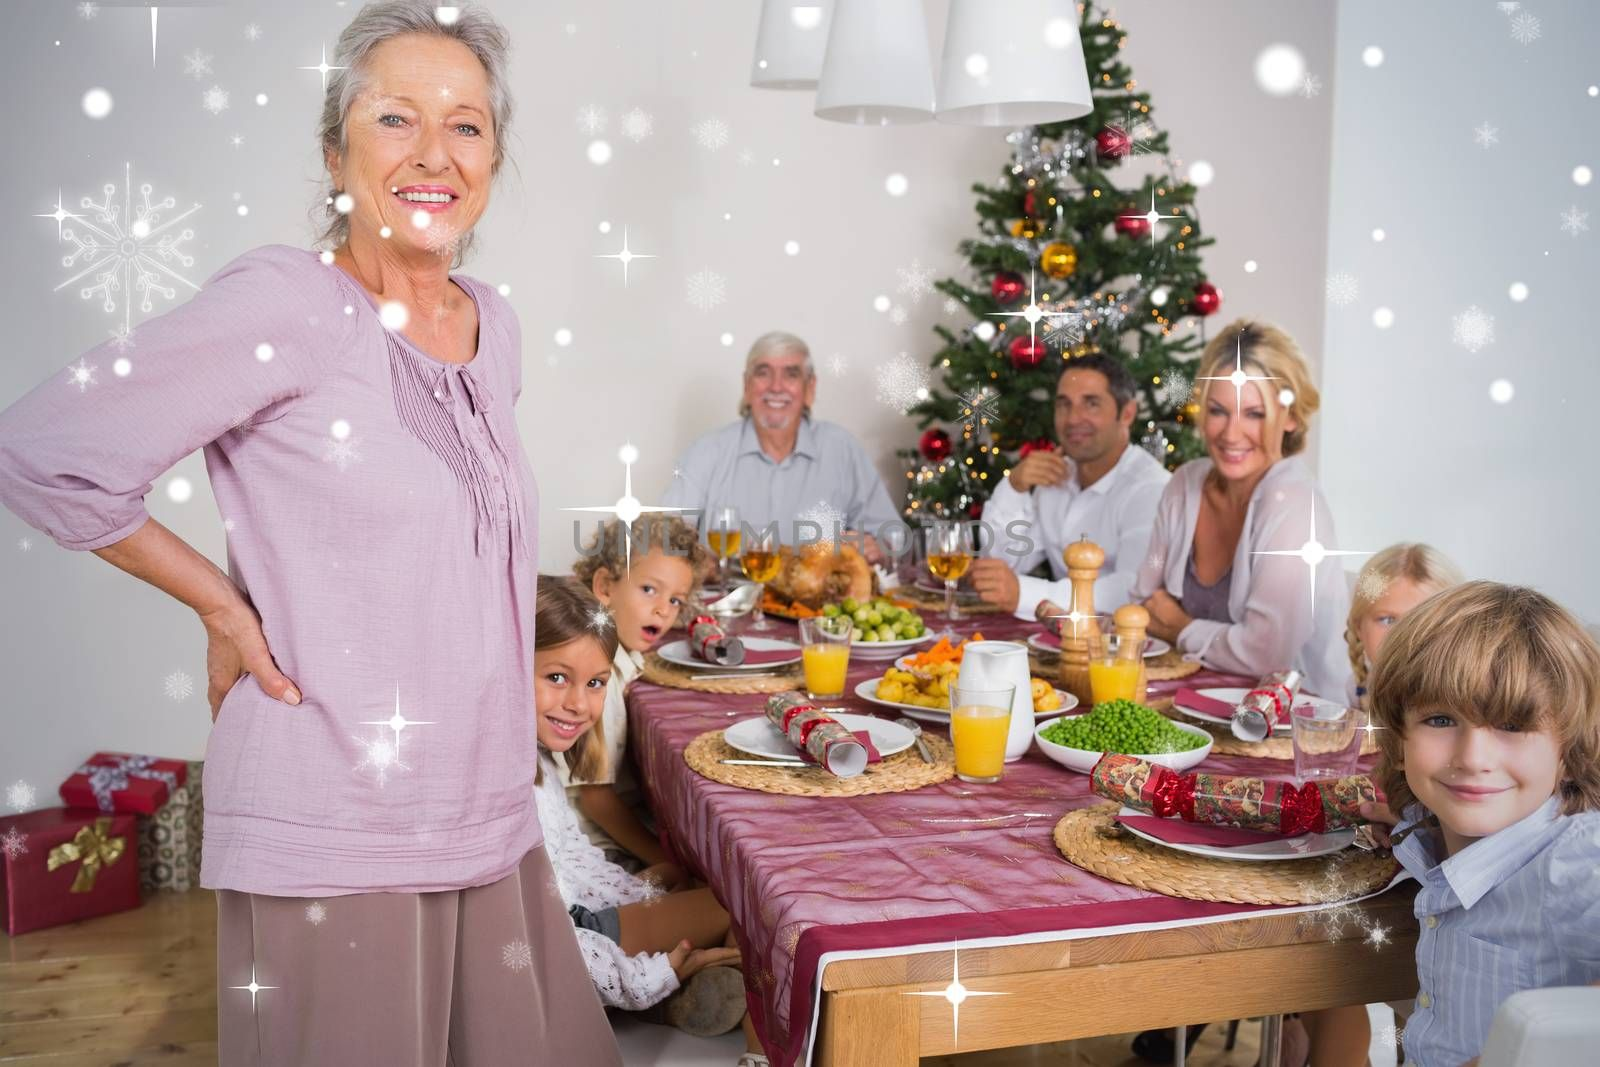 Composite image of Grandmother standing beside dinner table against snow falling